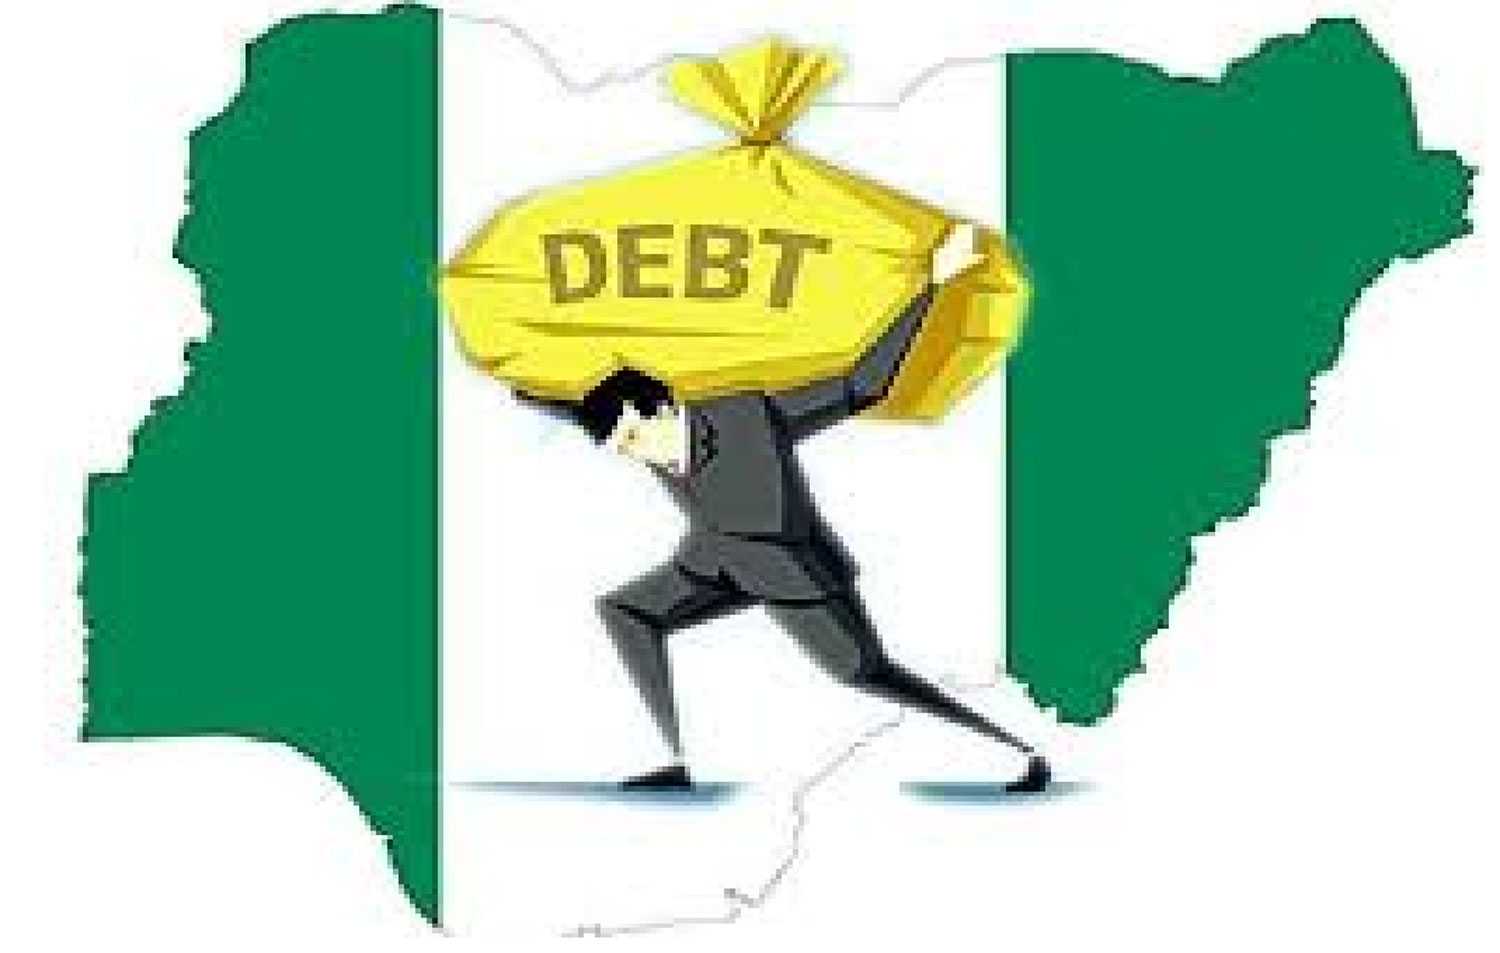 N1.3bn debt: AMCON takes over assets of Unicorn Place & Leisure Services Limited